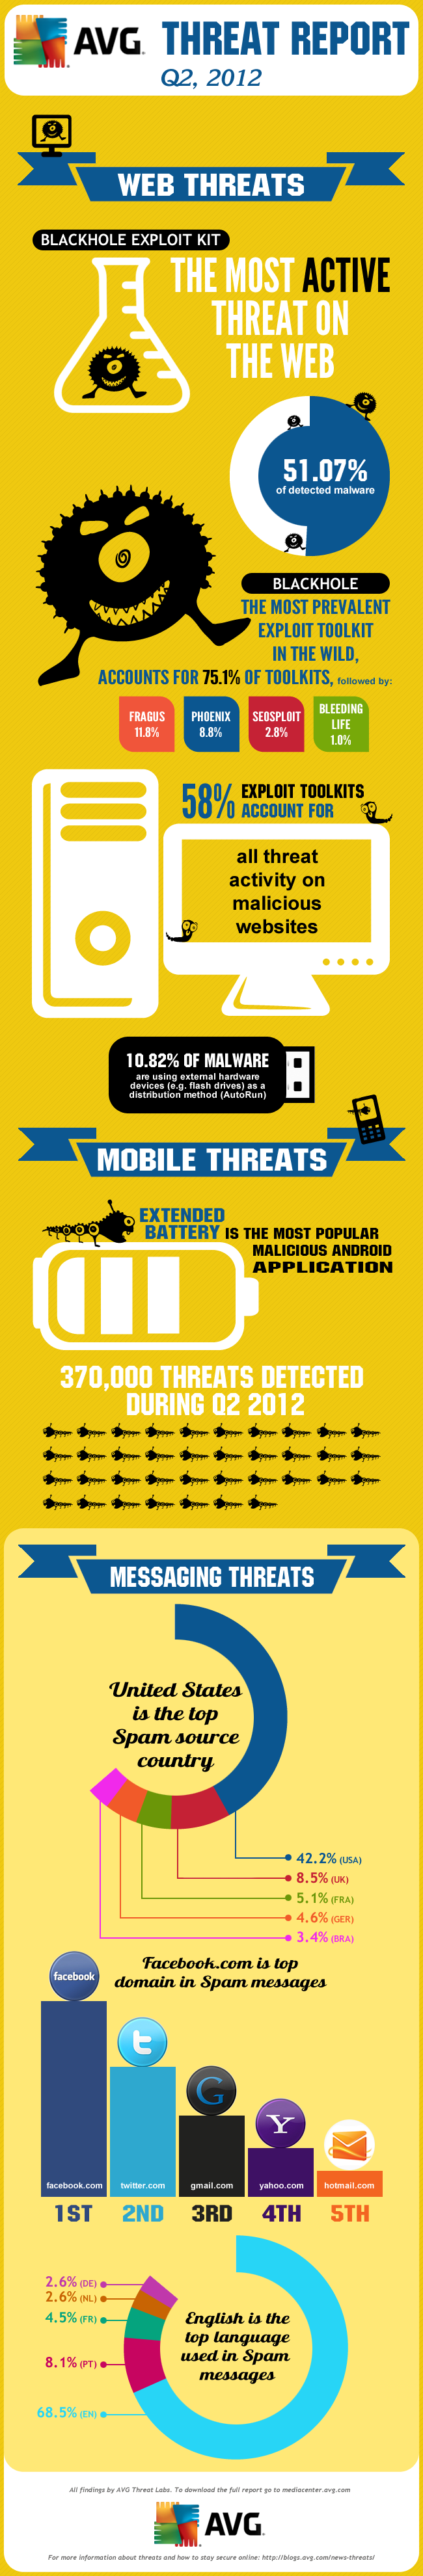 THREATREPORTQ2_INFOGRAPHIC_V3.2_24072012.png